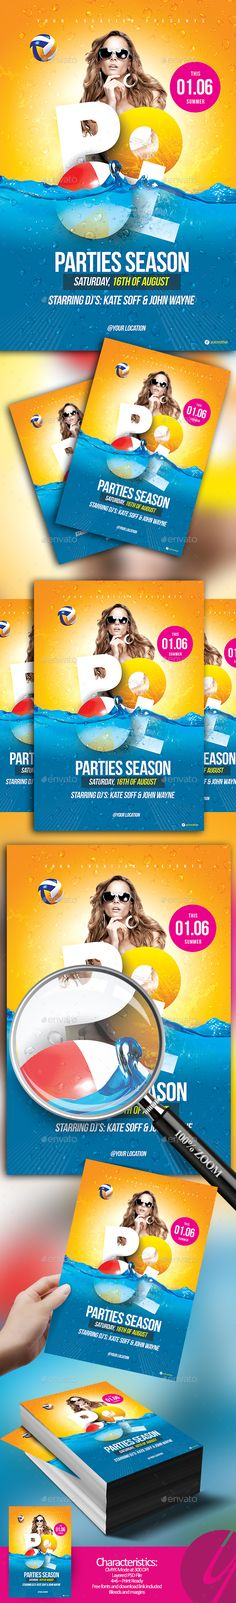 Pool Parties Season Flyer - Clubs & Parties Events Download here: https://graphicriver.net/item/pool-parties-season-flyer/19973081?https://themeforest.net/item/assemble-a-contemporary-portfolio-theme/16966325?ref=classicdesignp